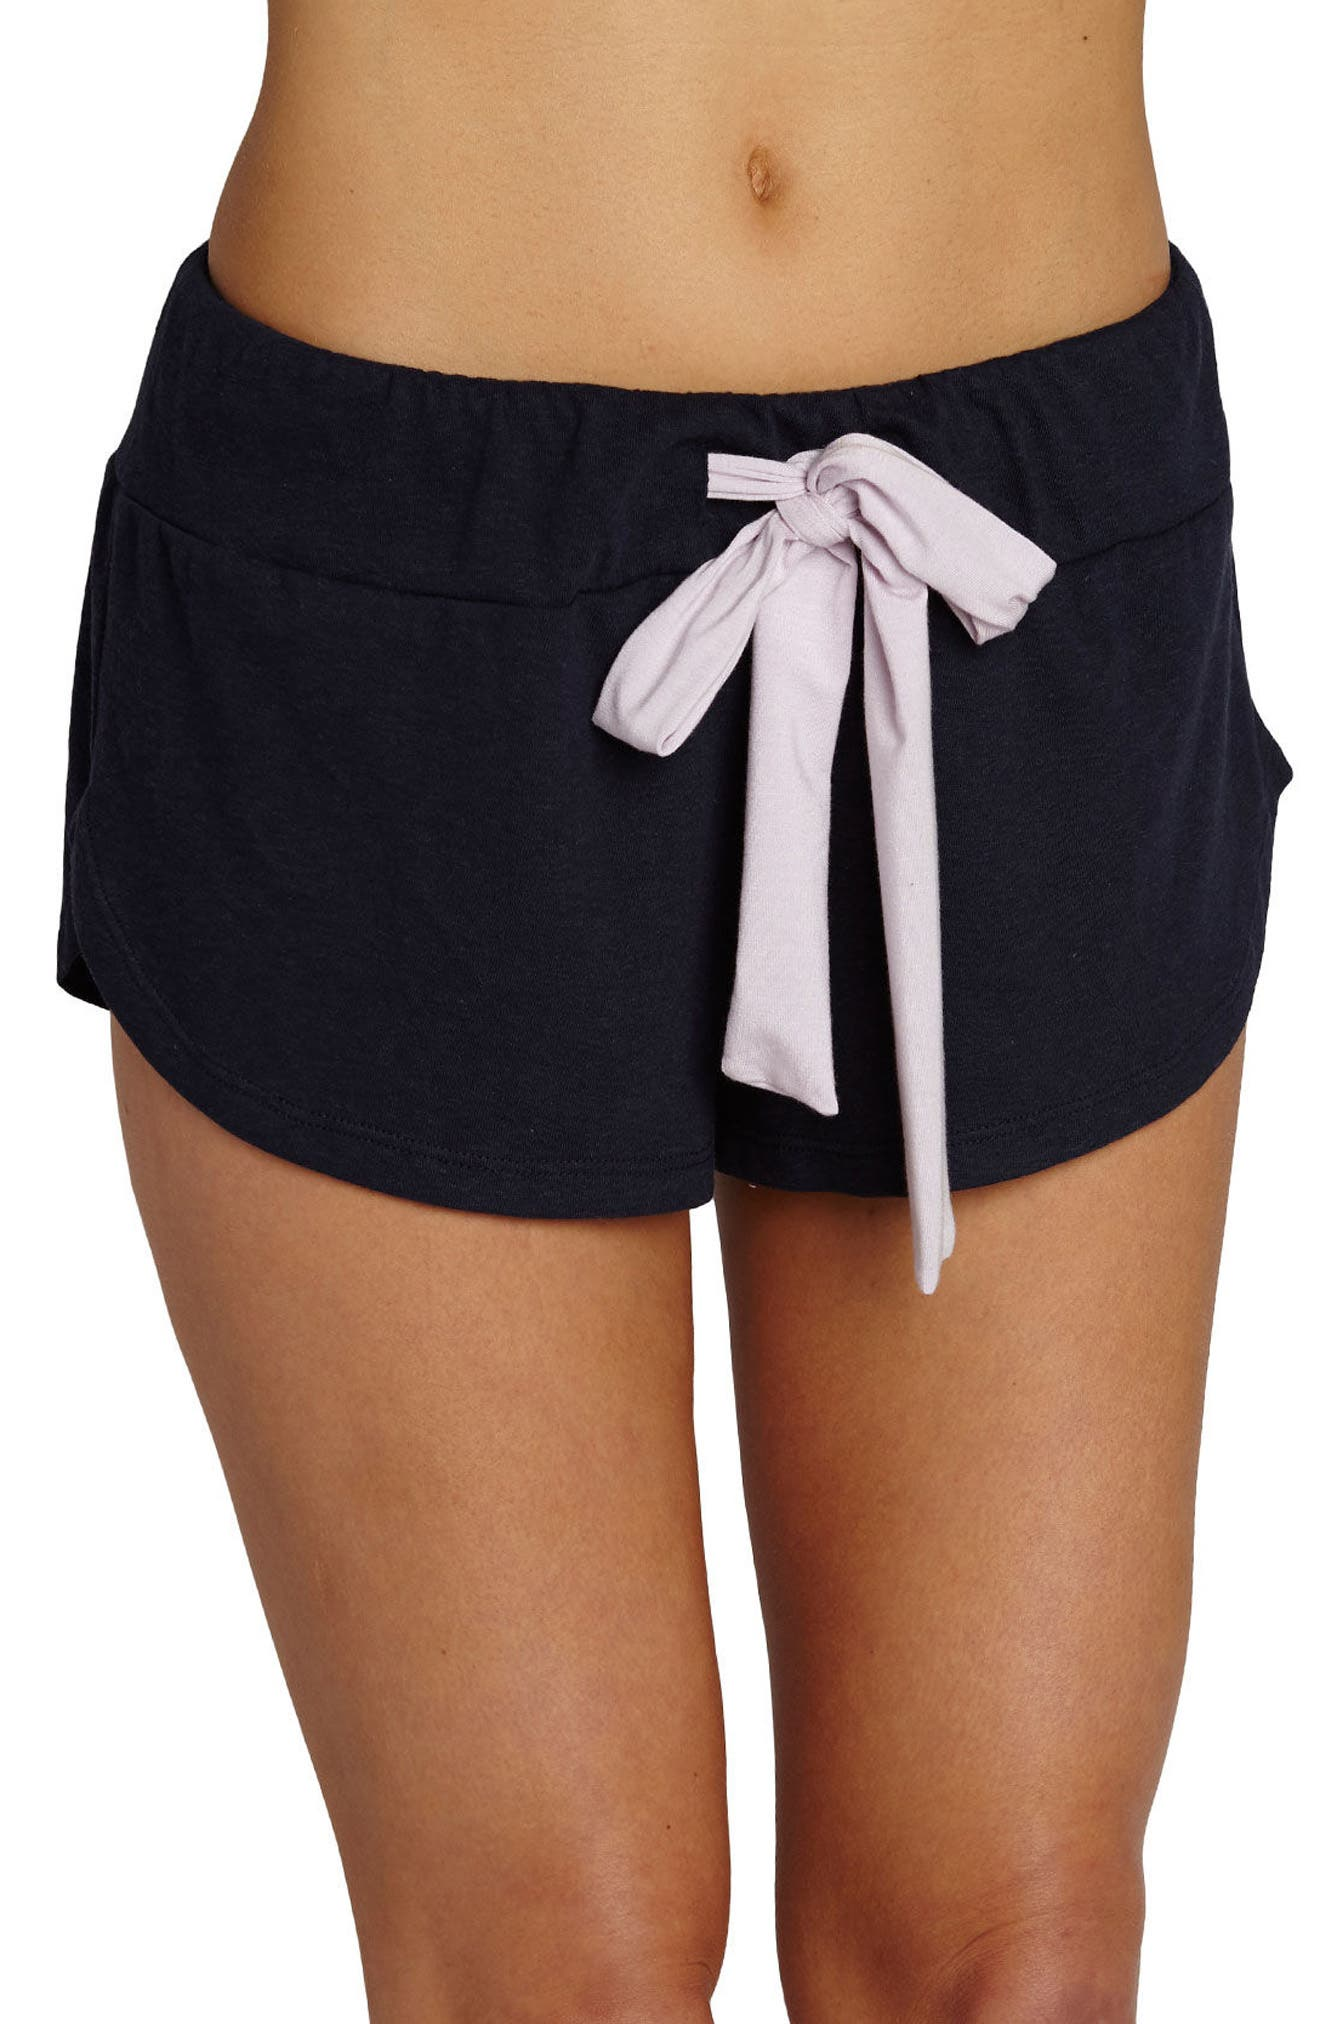 Alternate Image 1 Selected - Eberjey Heather Knit Shorts